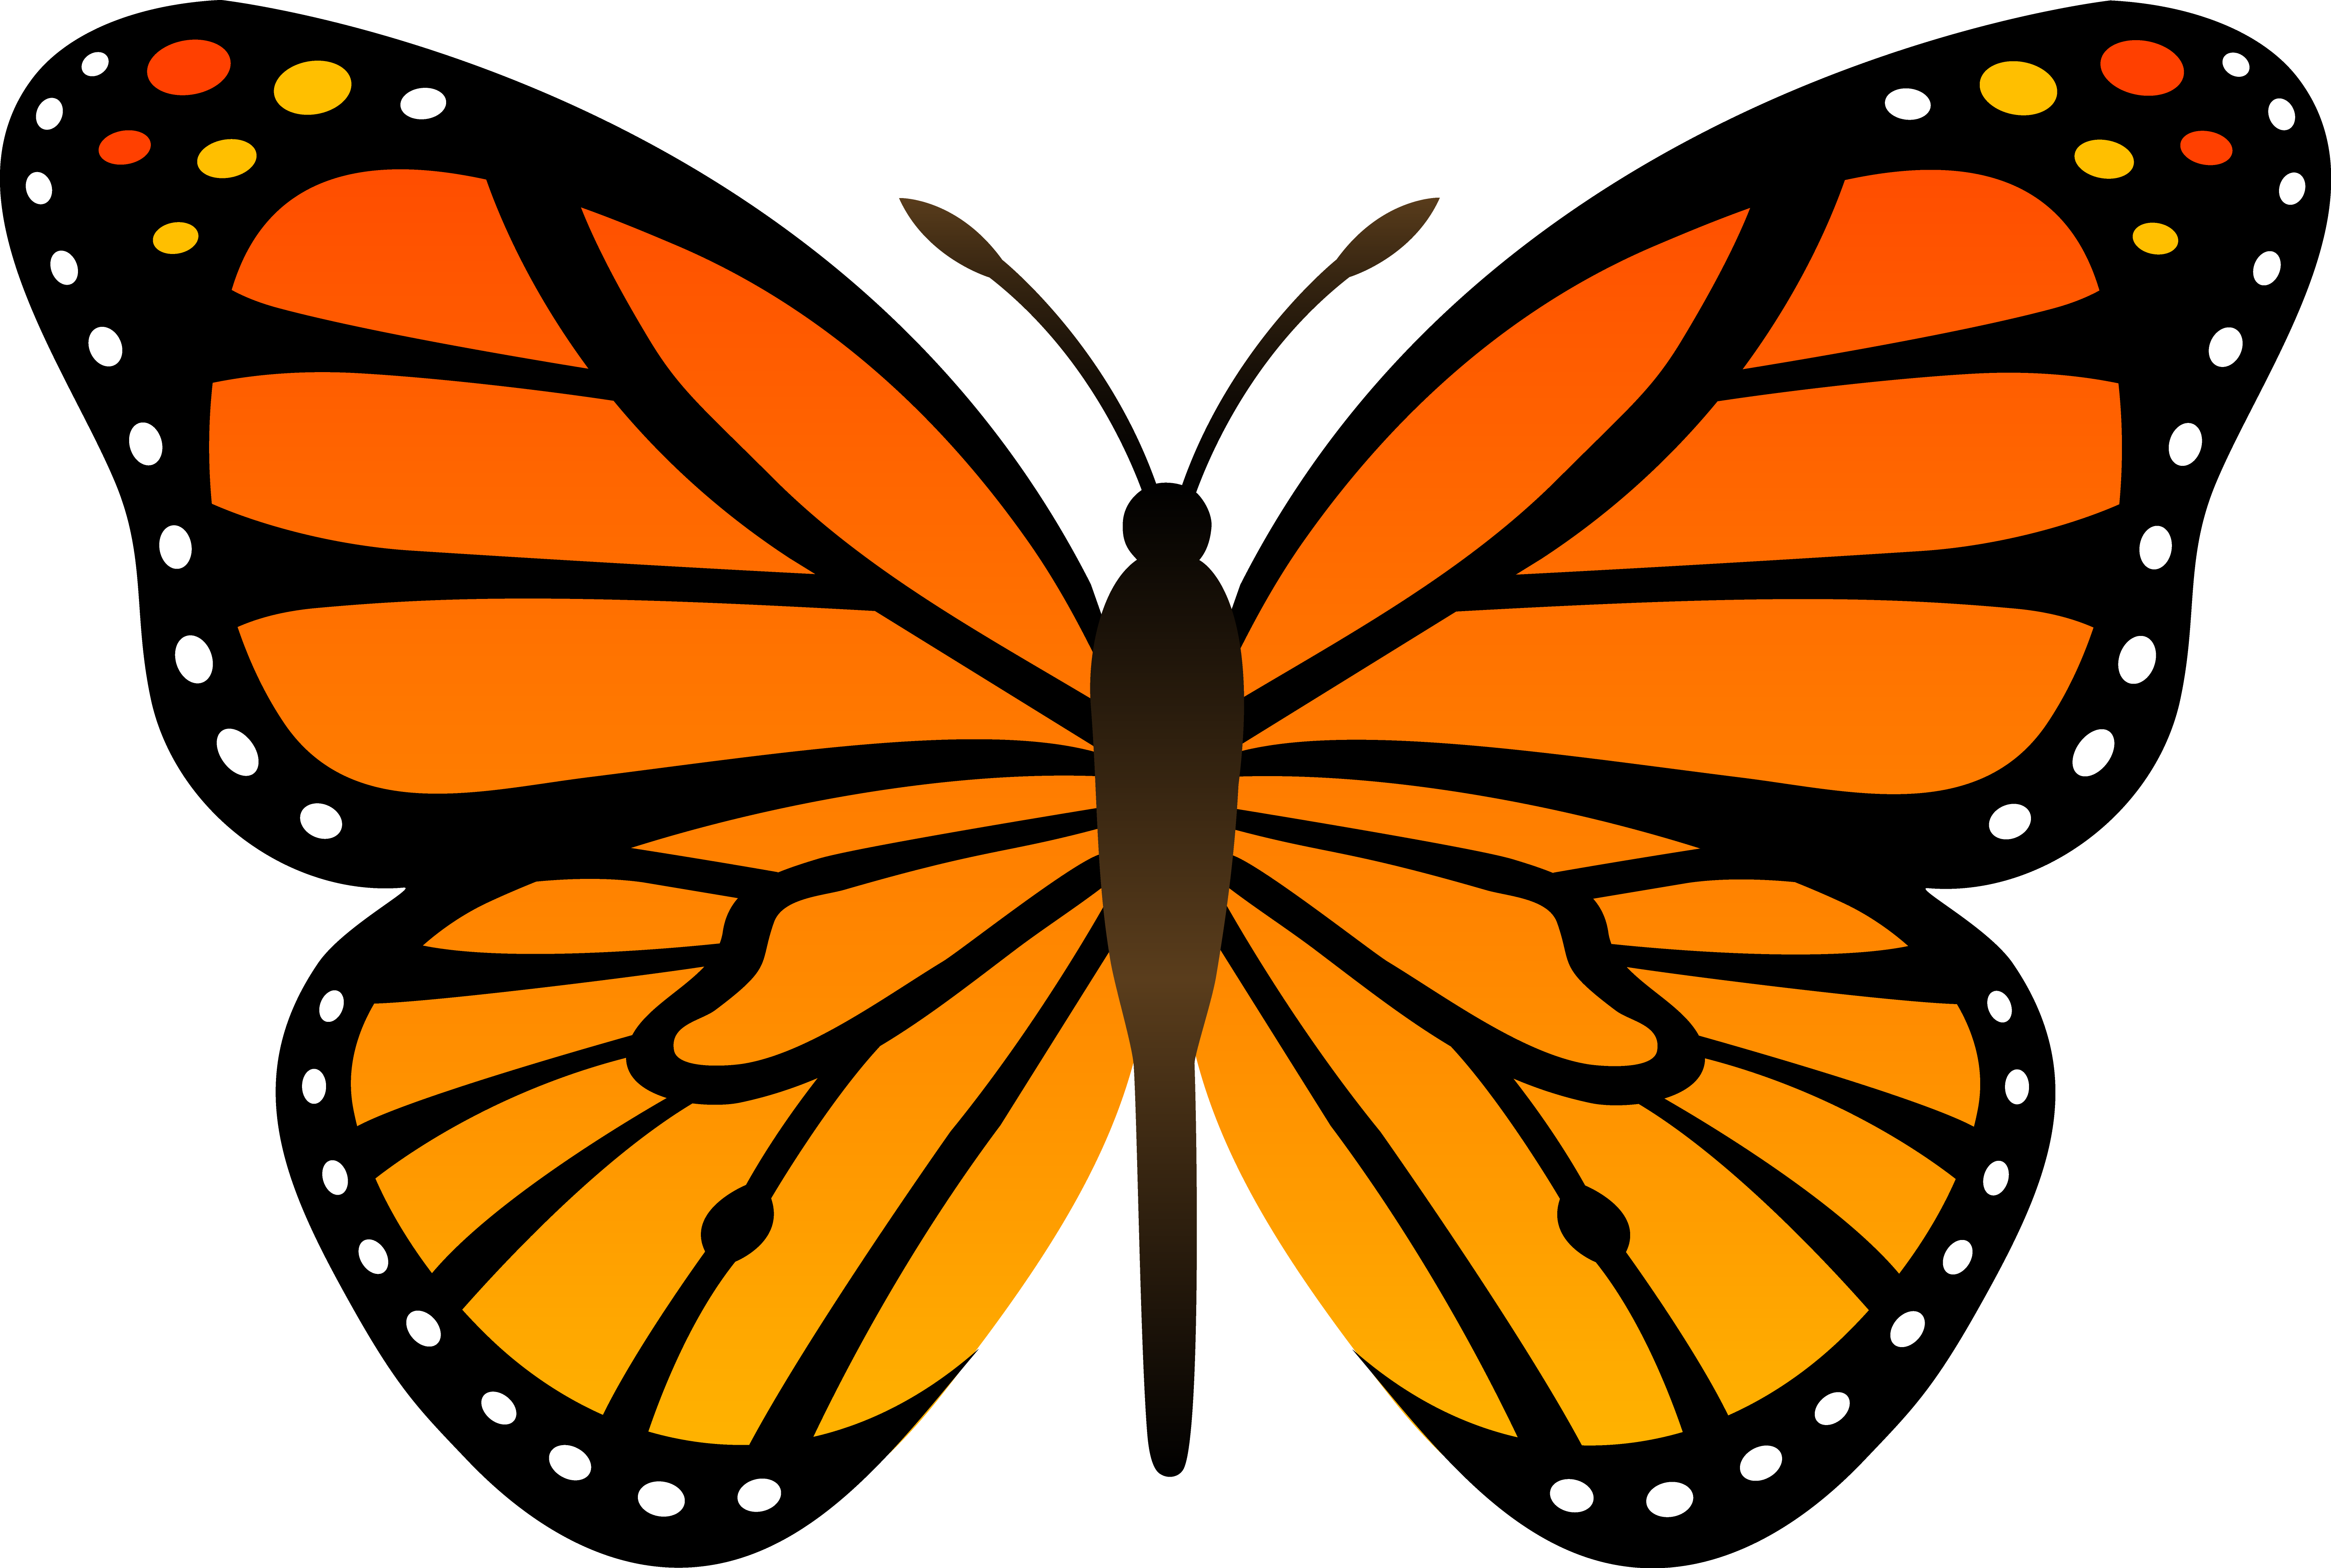 FREE Butterfly Clip Art 16. Butterfly Cartoon Pictures